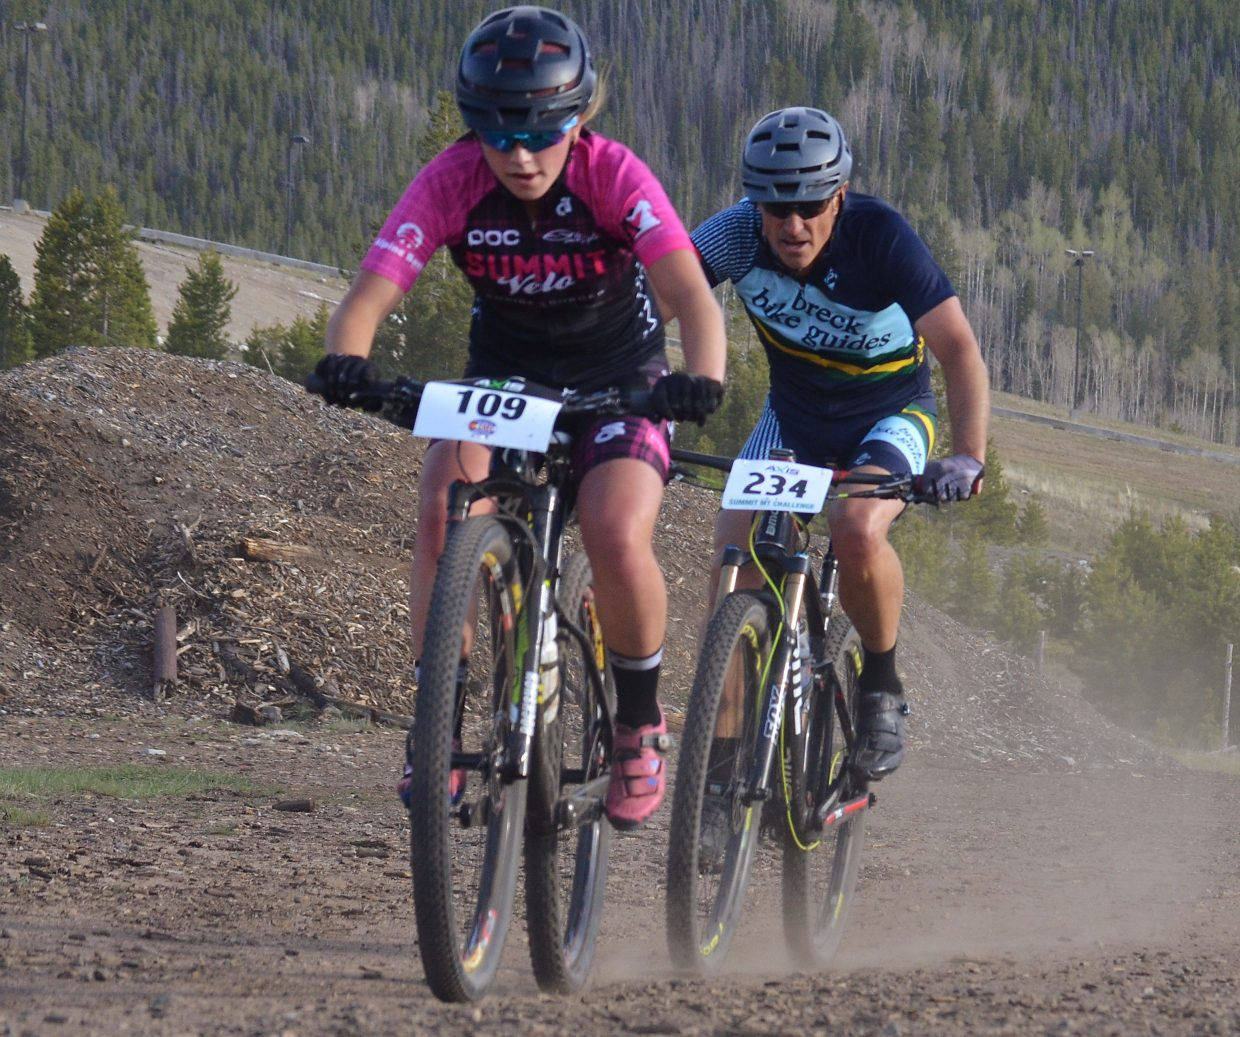 Young Ezra Smith (front) gets chased down by Wayne Thebeau at the 2016 Frisco Roundup on the Frisco Peninsula June 1. The Peninsula trails and roads are home to the opening race of the 2016 Colorado High School Cycling mountain bike season from Aug. 27-28.